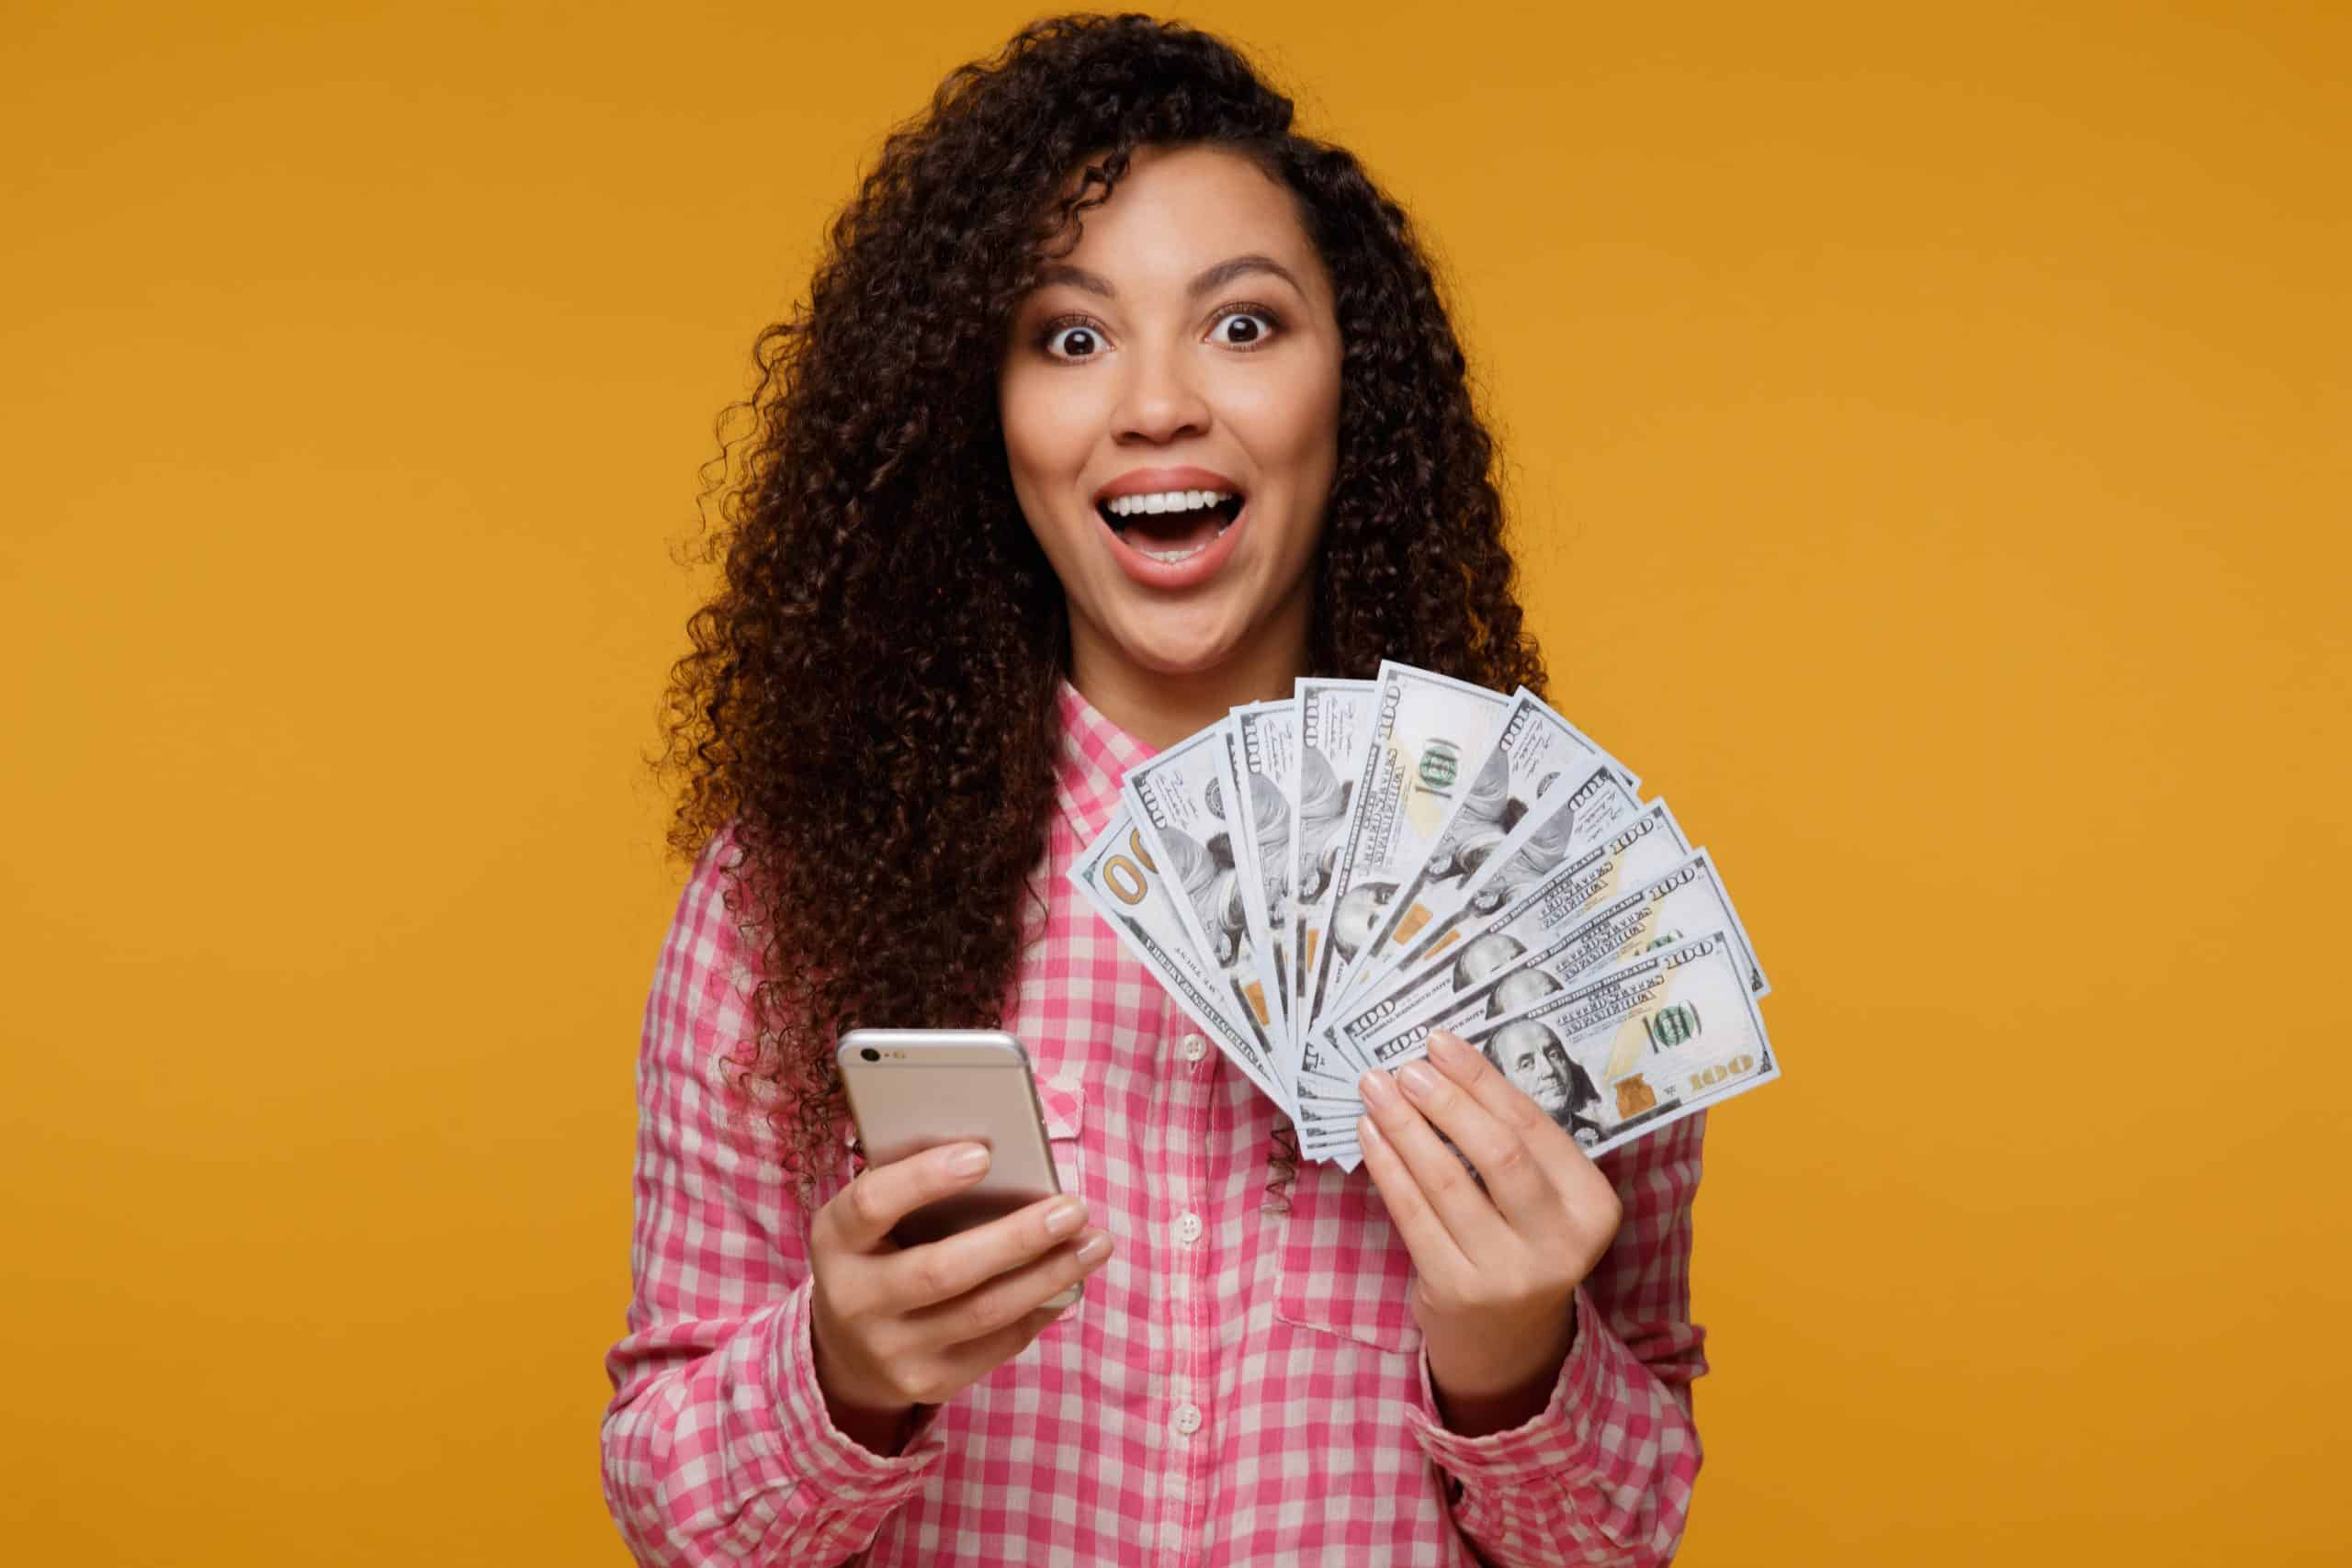 young-girl-holding-cash-in-pink-shirt-credit-score